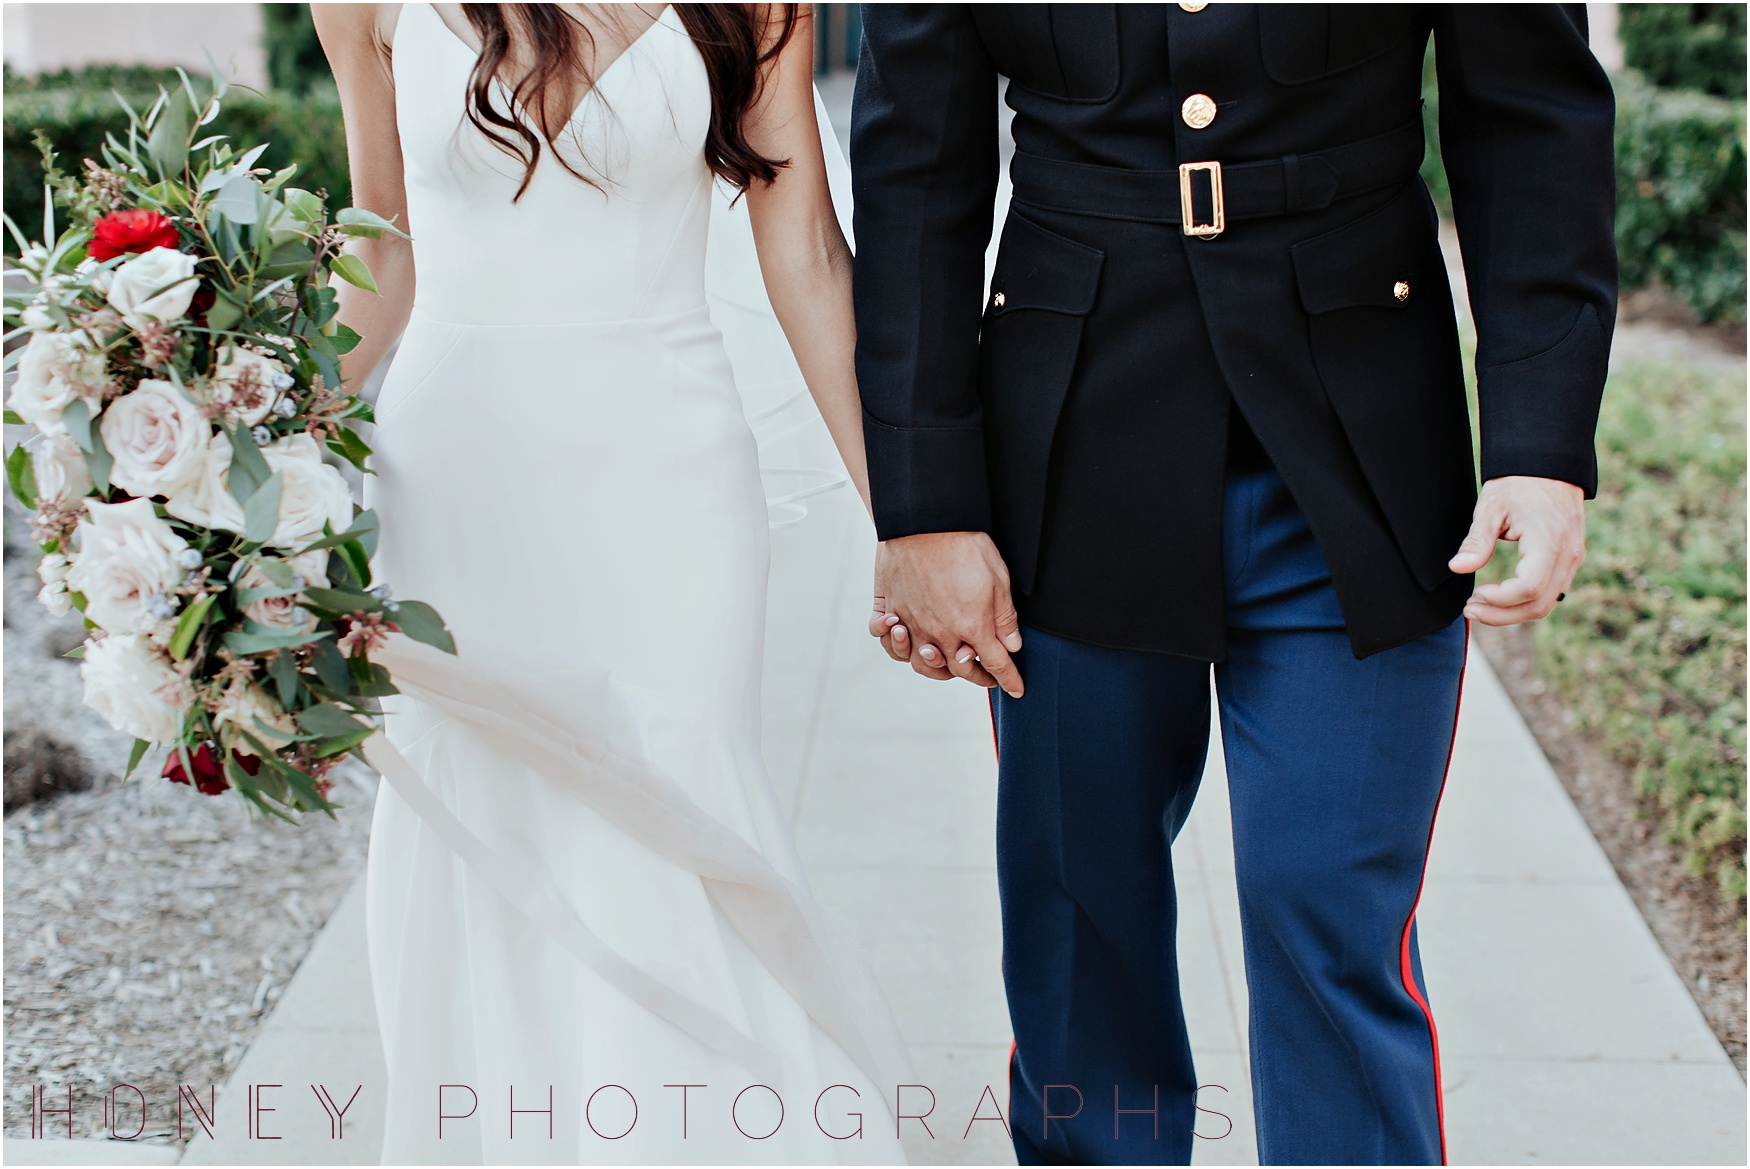 bricksandiegomilitaryurbanwedding0038.JPG